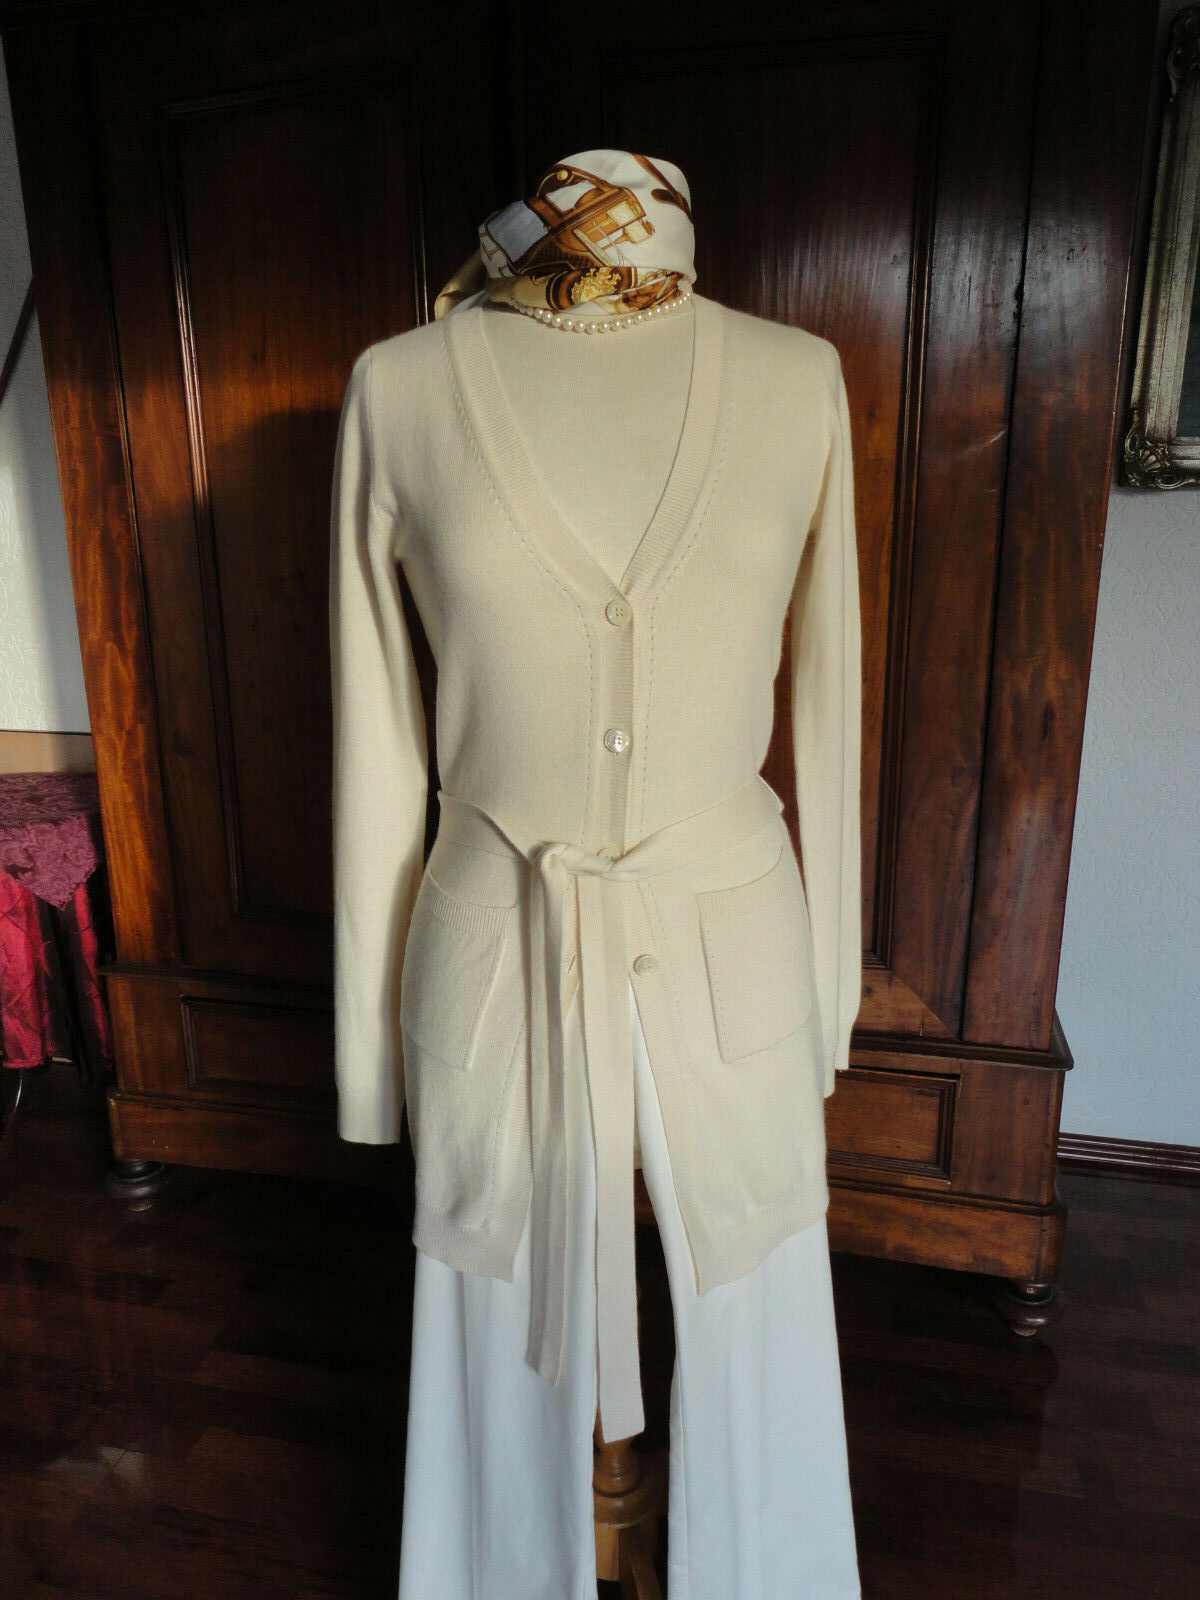 Parenti's lange, sehr edle Cashmere Strickjacke , Gr. 34-36 creme, wollweiss Top